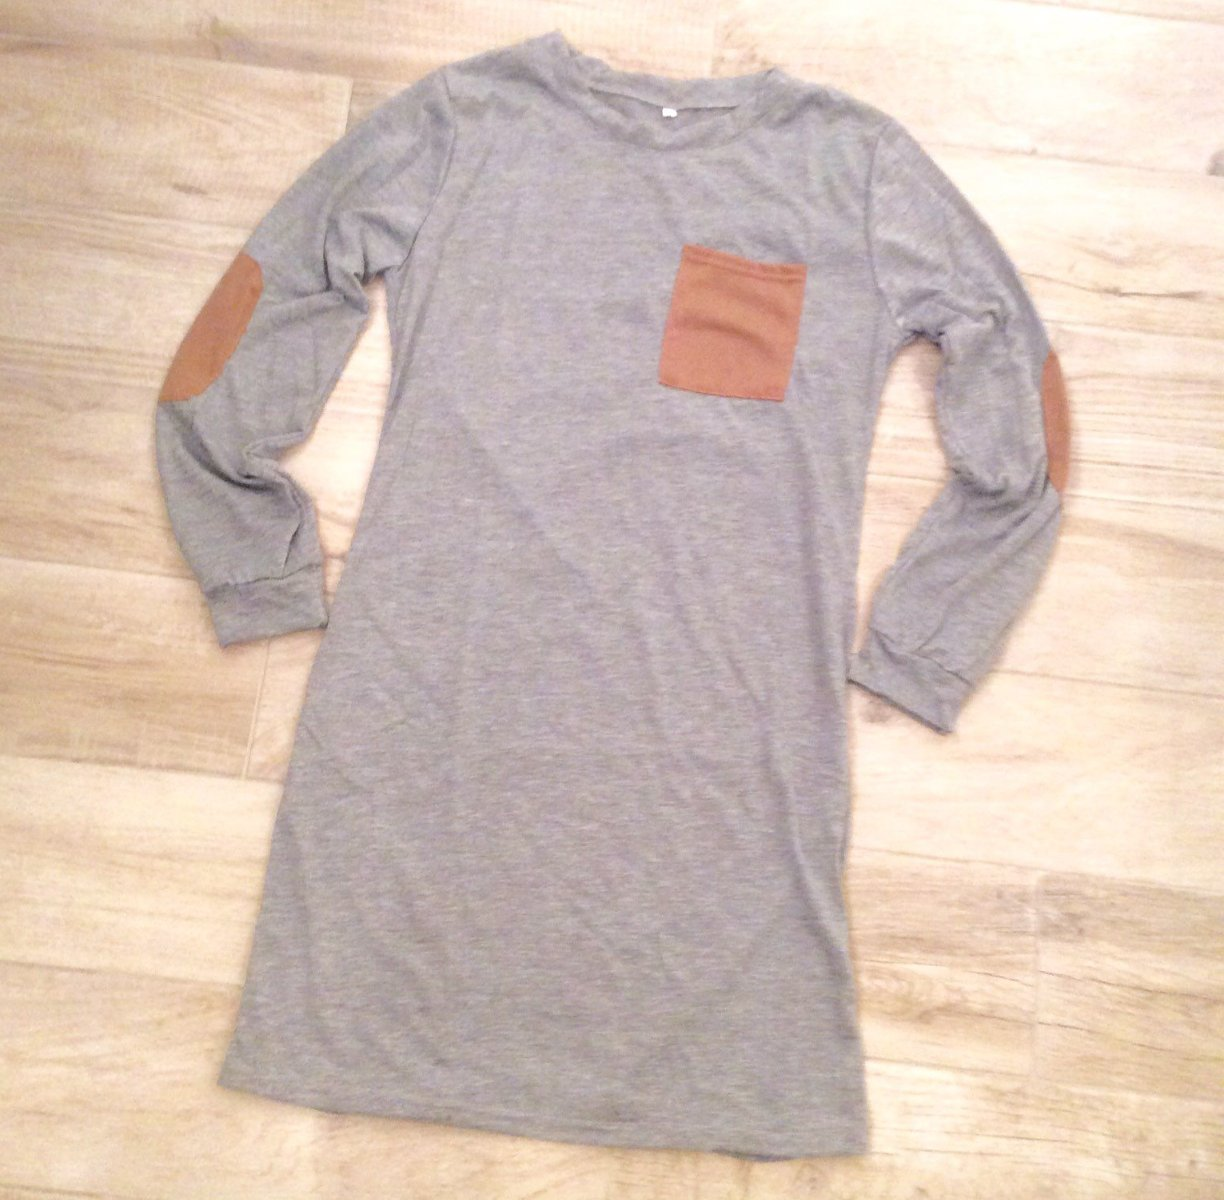 BOHO TSHIRT DRESS Heather Grey S